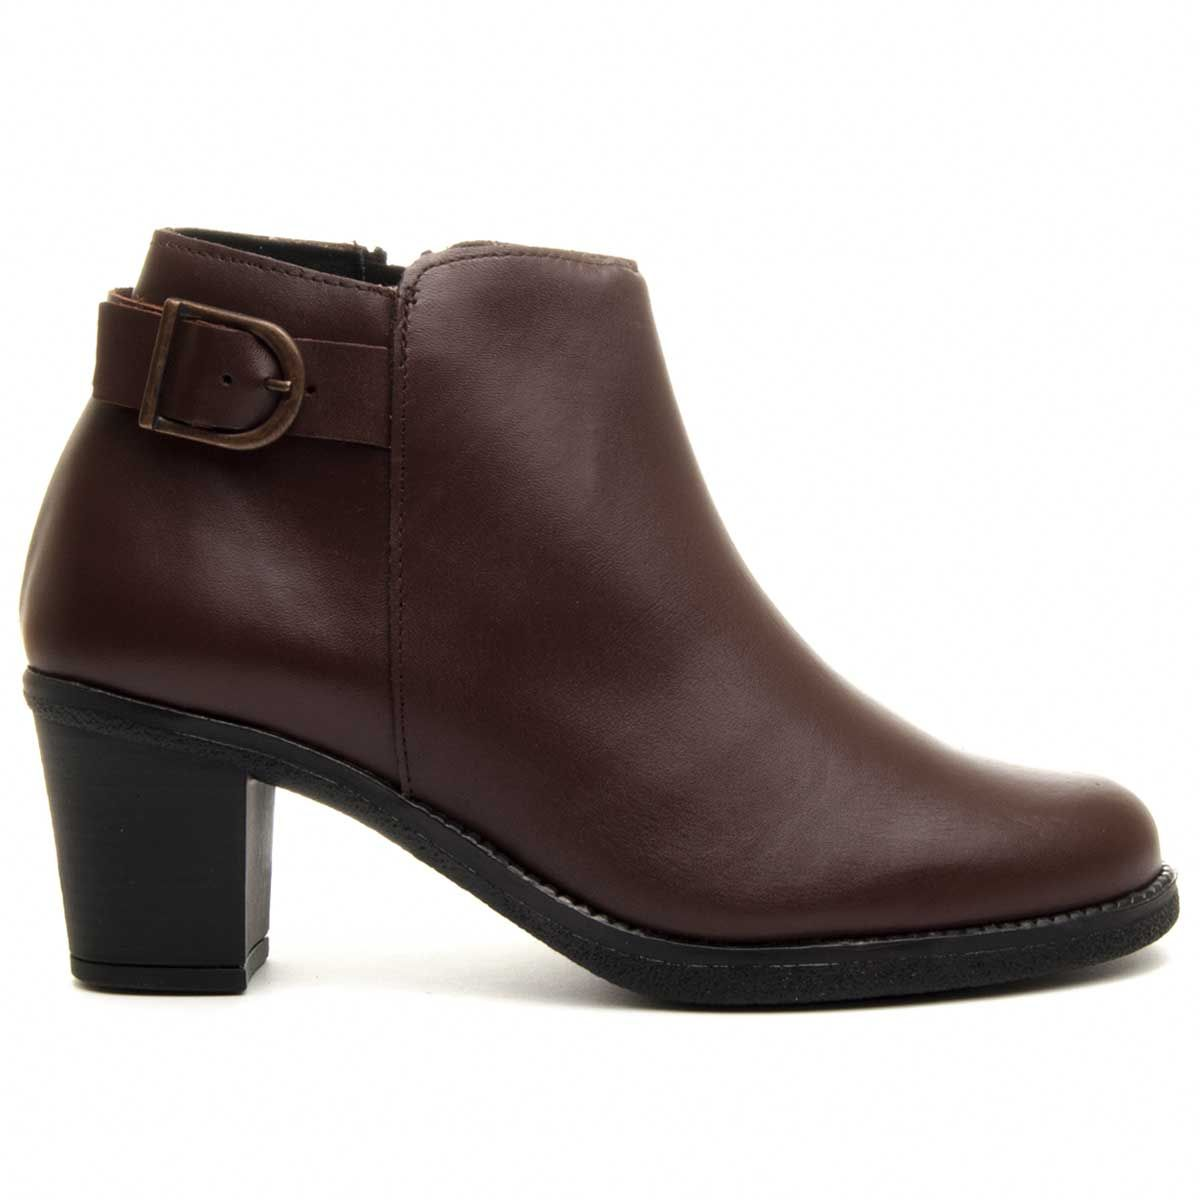 Purapiel Buckle Ankle Boot in Brown